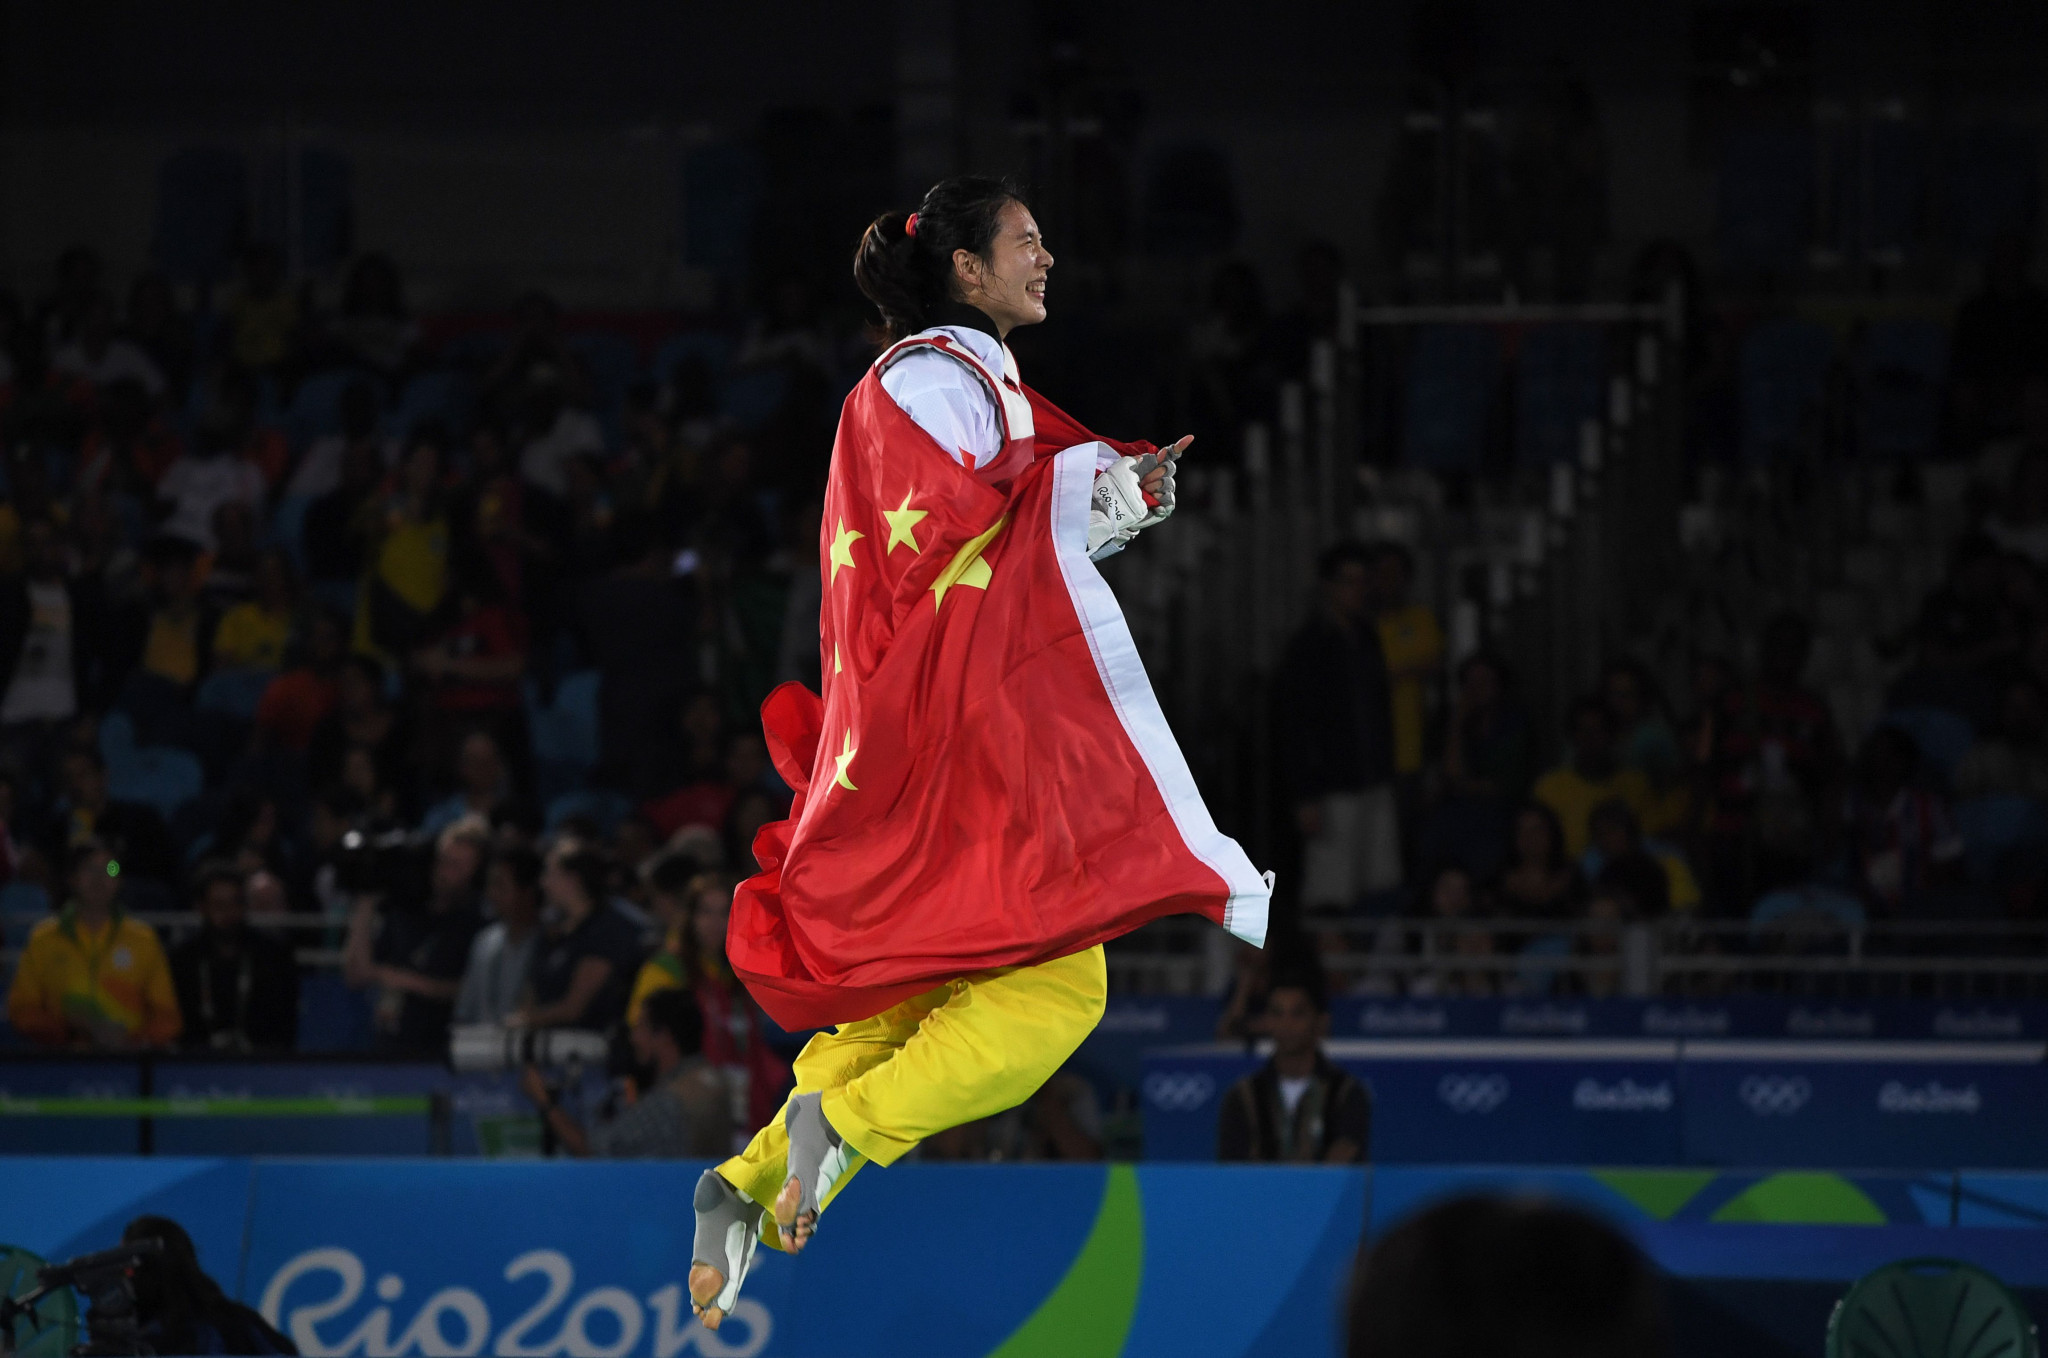 Shuyin Zheng won Olympic gold at Rio 2016 ©Getty Images